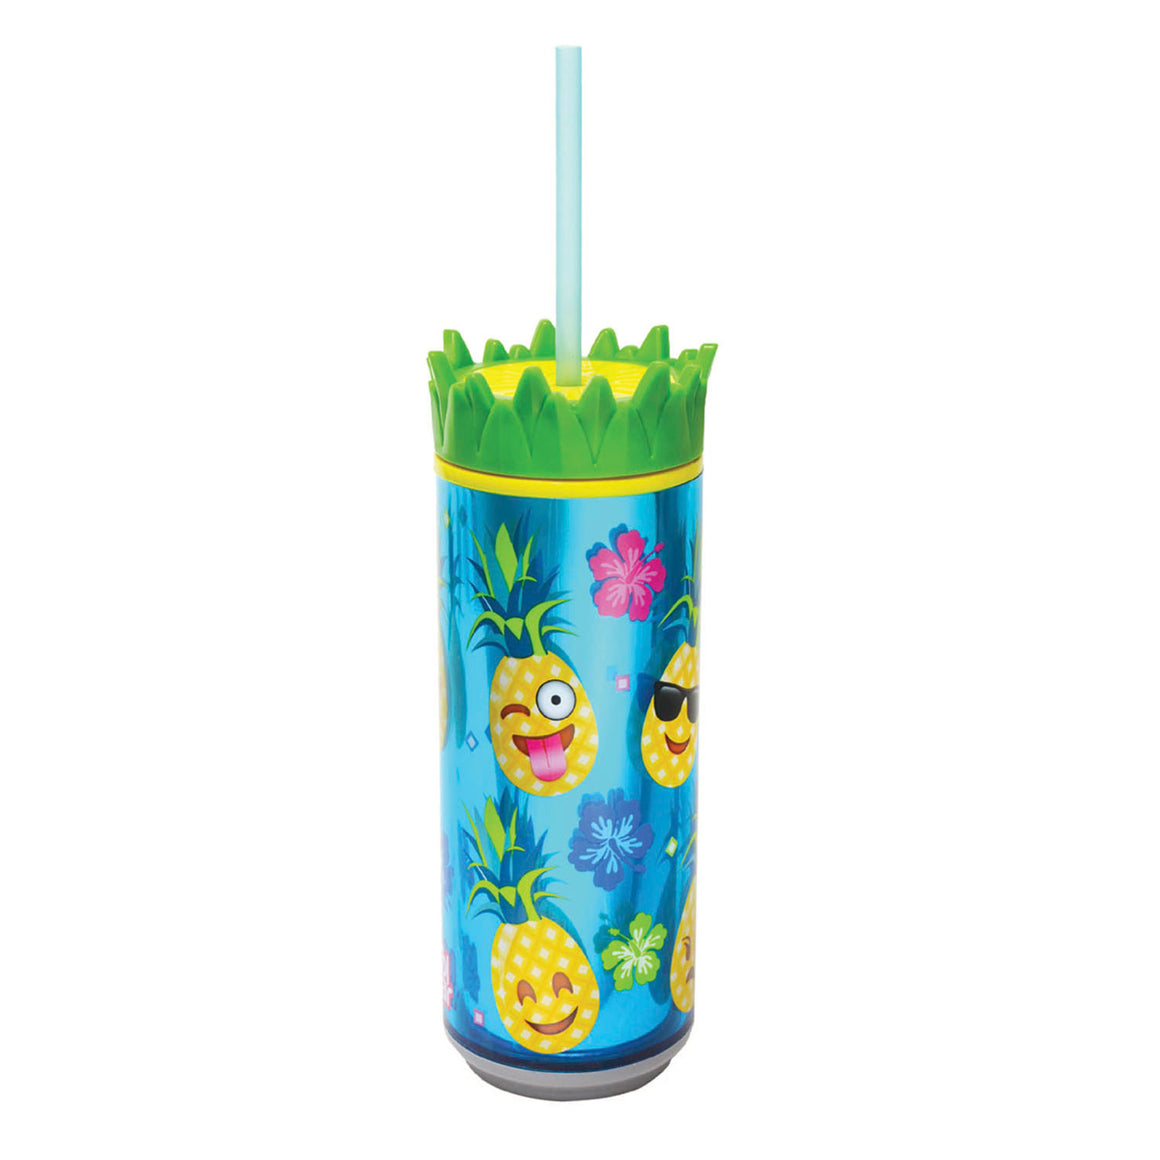 Light Blue / Pineapple Faces 16 Oz Pineapple Can at Cool Gear Coolgearcans